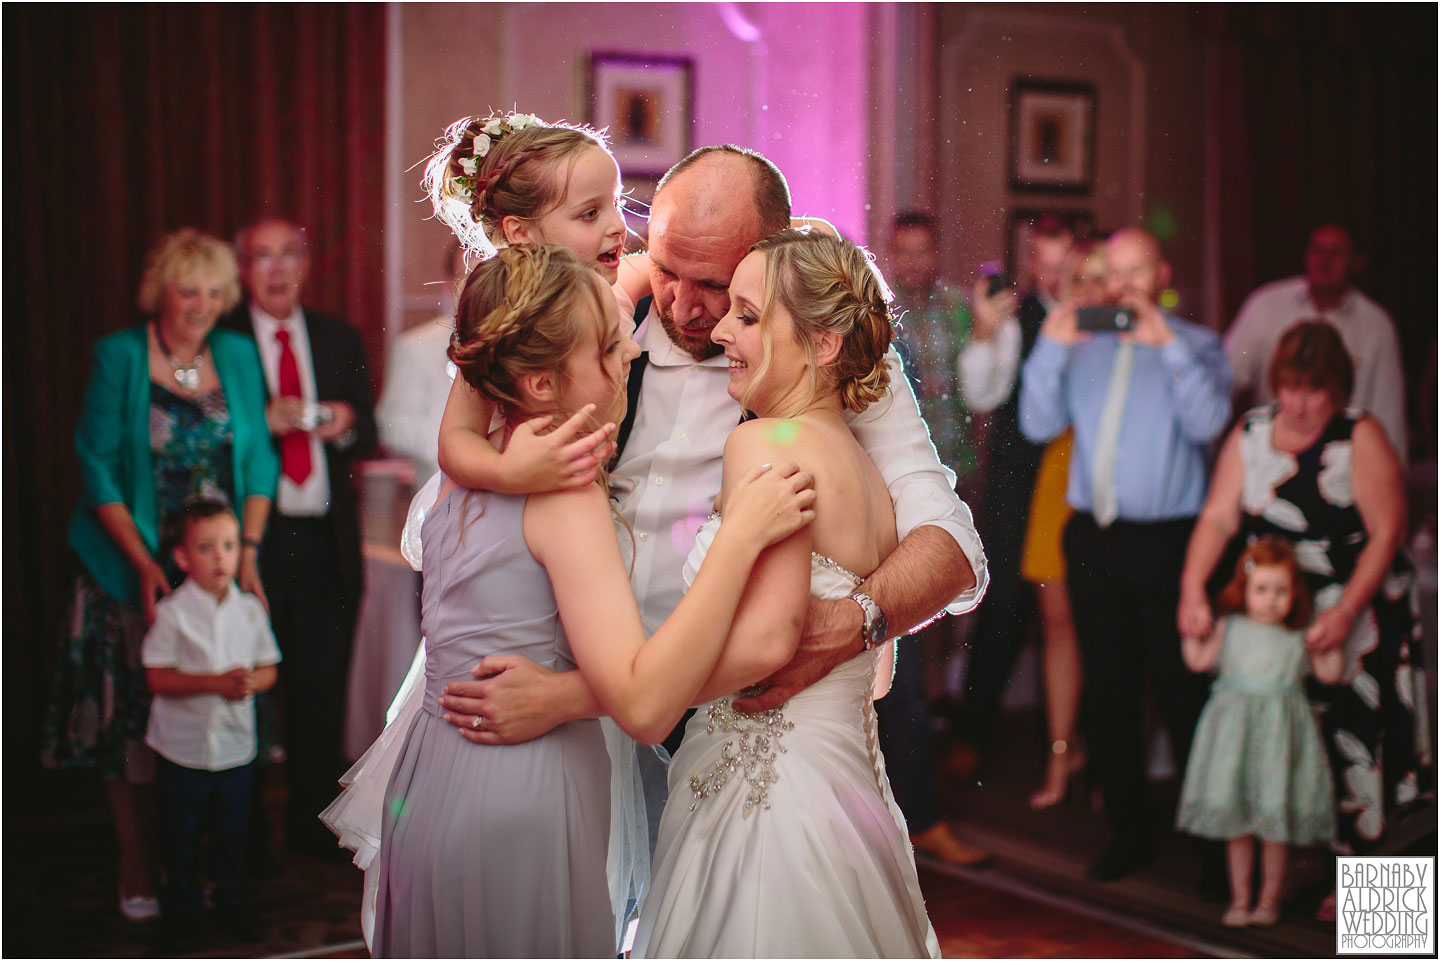 Wood Hall Hotel Wetherby family first dance photograph, Wood Hall Wedding Photos, Wood Hall Wedding Photographer